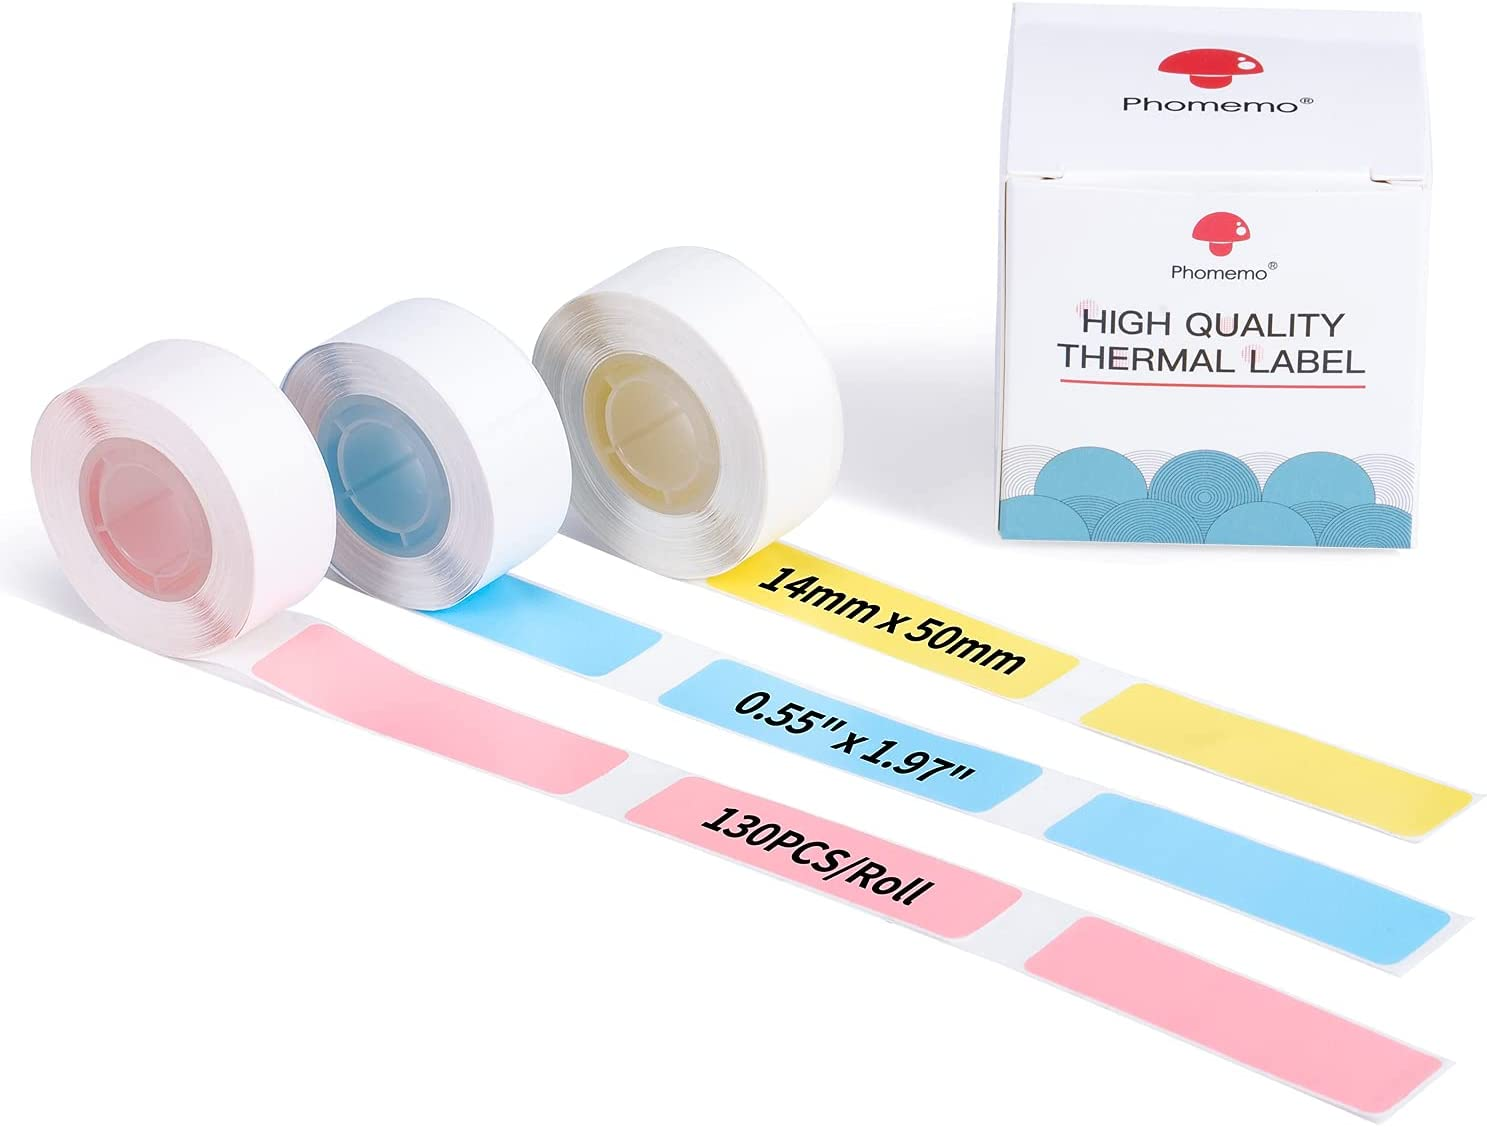 D30 Color Thermal Labels - Blue/Pink/Yellow Thermal Label Roll D30 Label Tape 14mm x 50mm (0.55in x 1.96in) Compatible with Memoking/Phomemo D30 Printer, 130 Labels/Roll